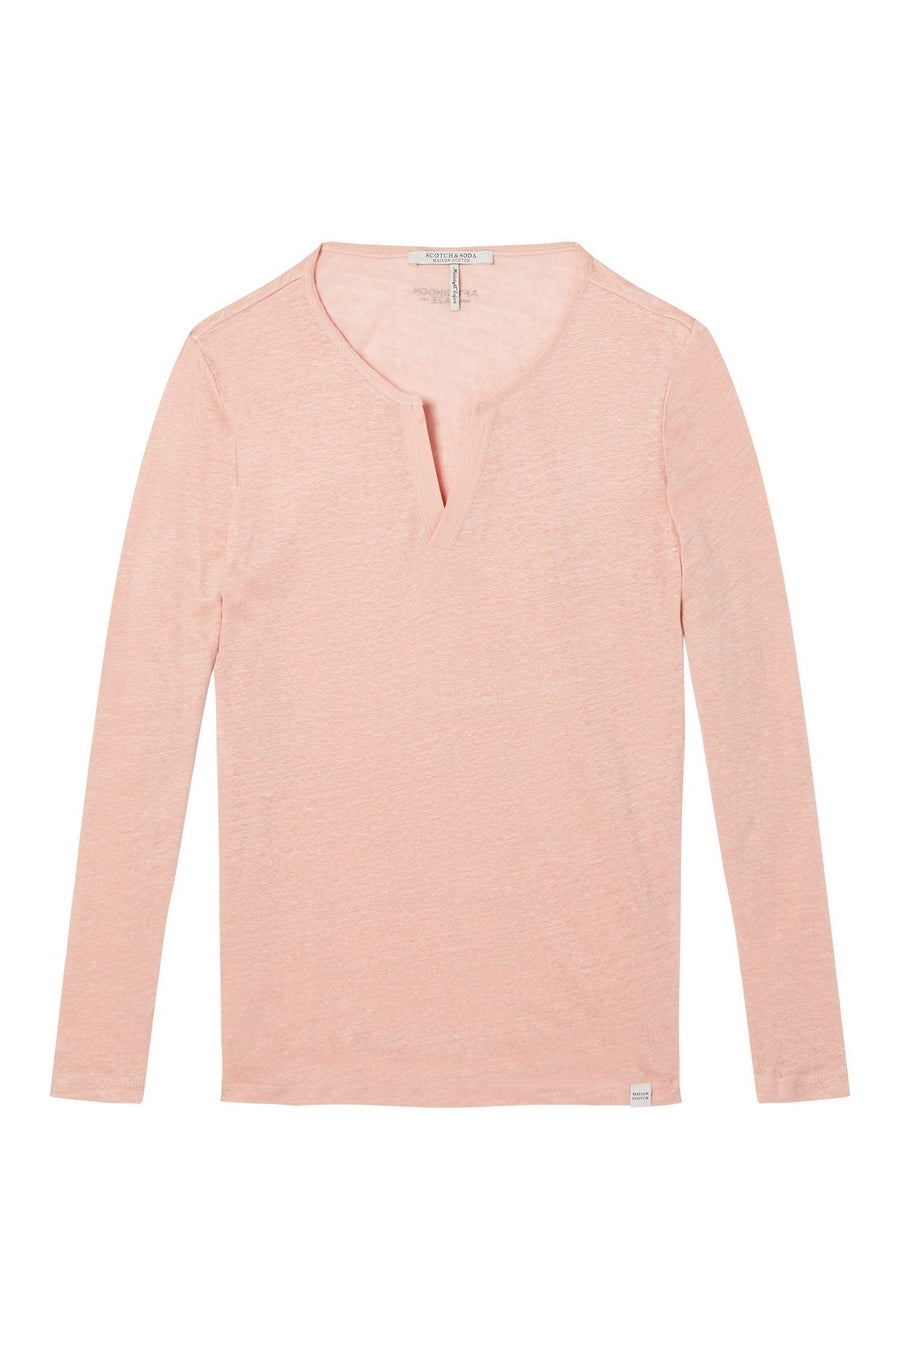 Linen Long Sleeve Tee with Woven Details in Blush